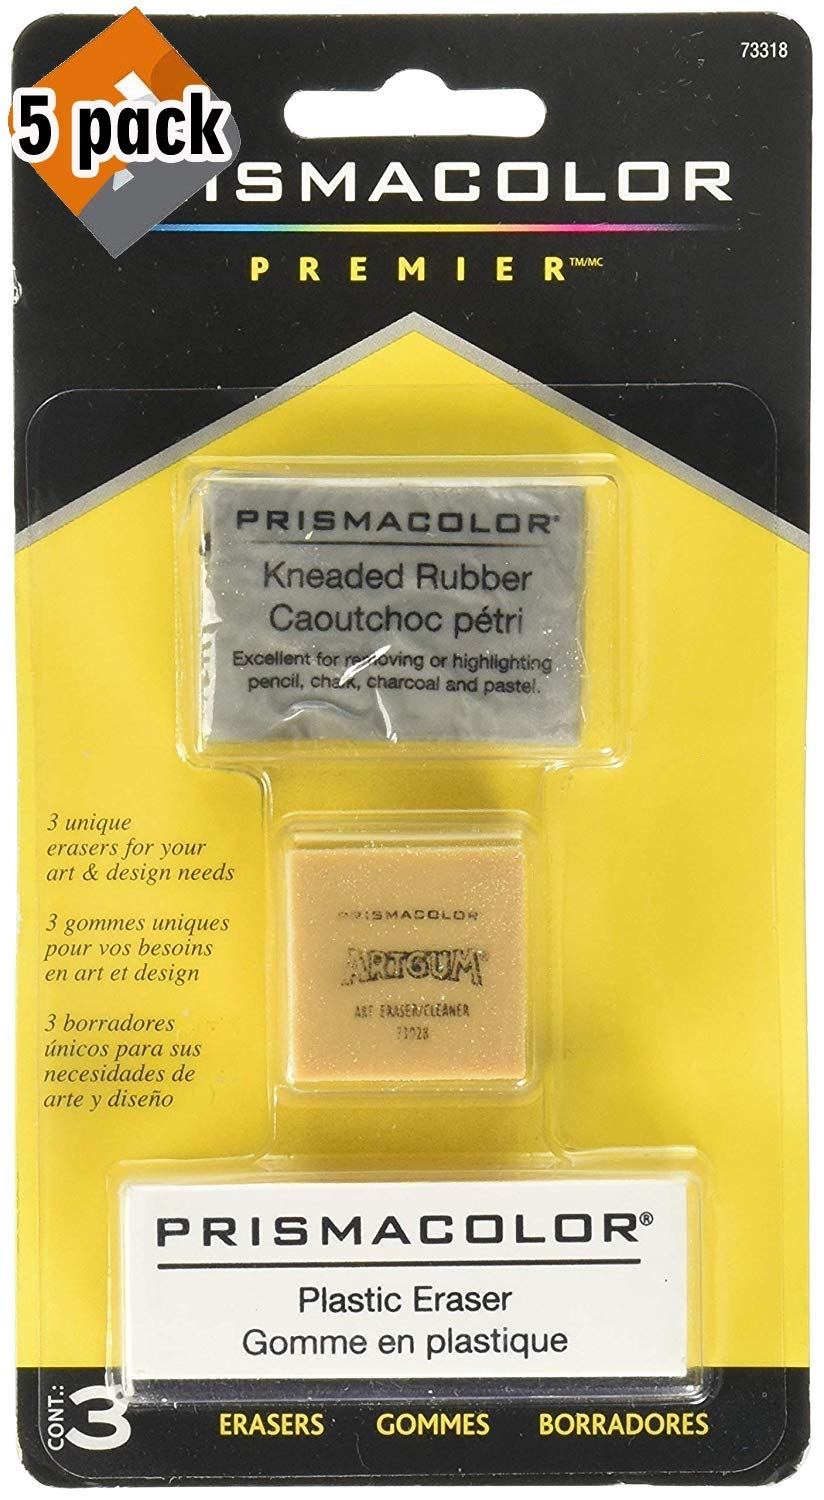 Prismacolor Premier Kneaded, ArtGum and Plastic Erasers, 5 Pack of 3